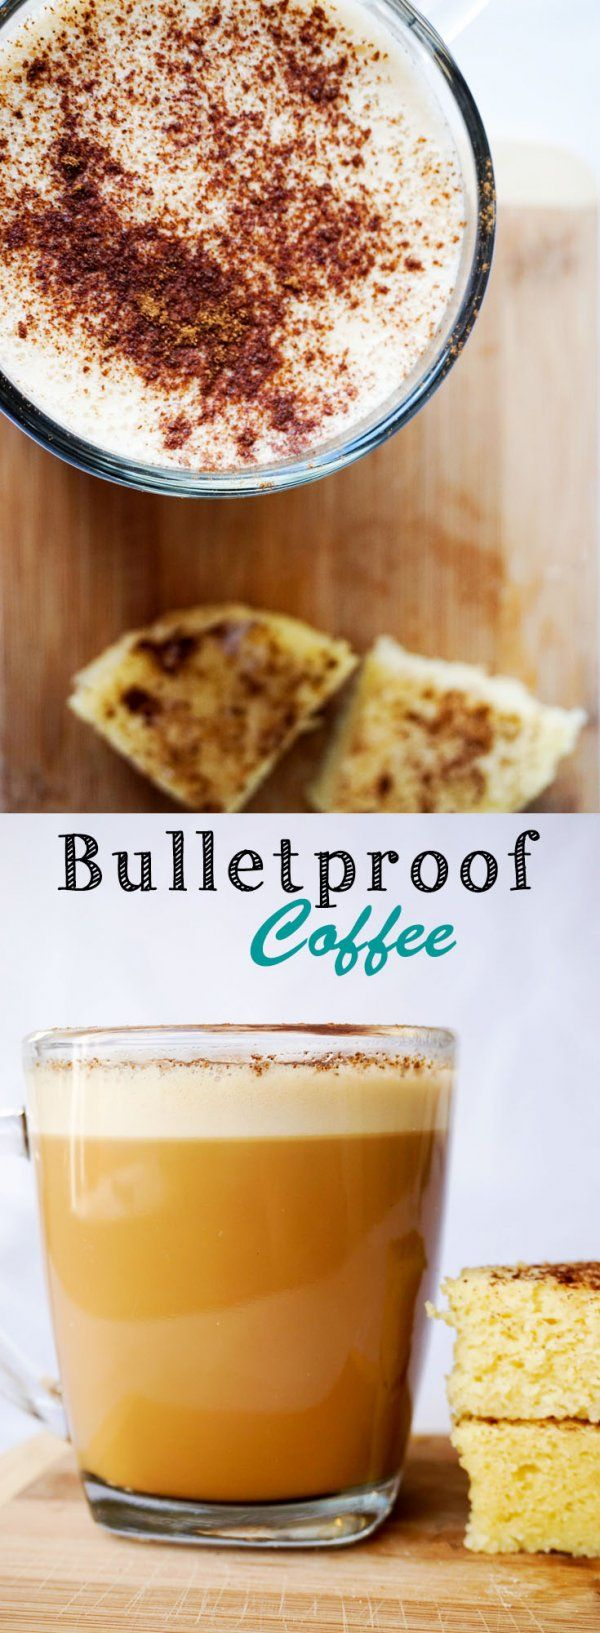 Bulletproof Coffee made fast and easy. The perfect start to a keto day!